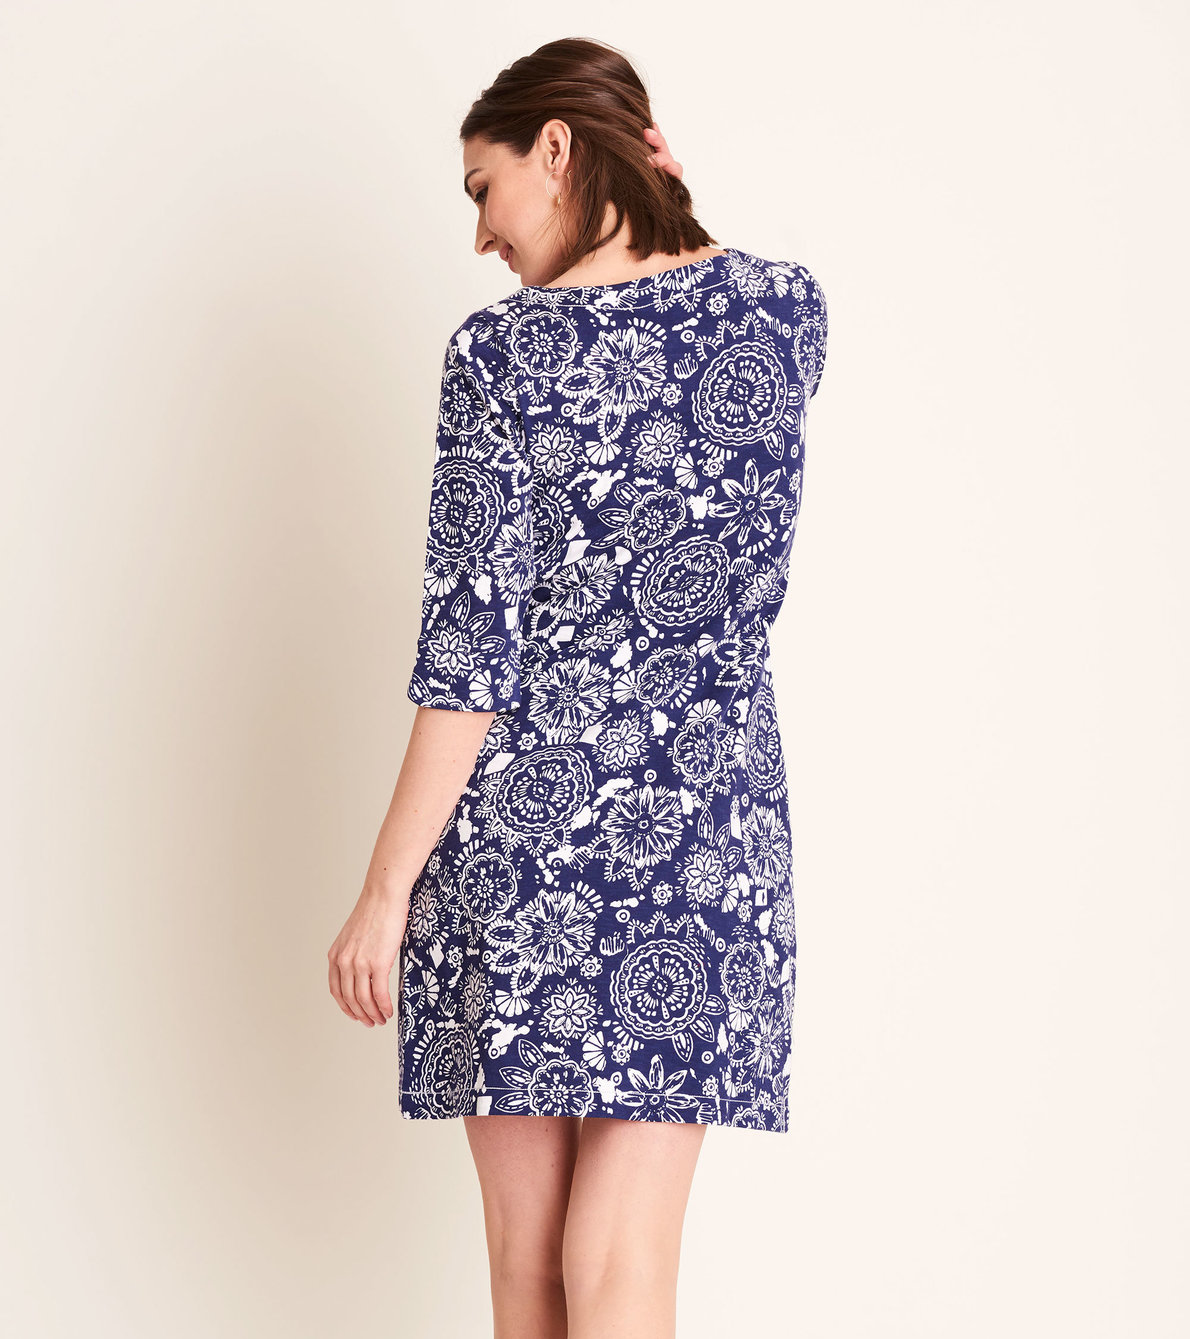 View larger image of Lucy Dress - Navy Mandala Flowers